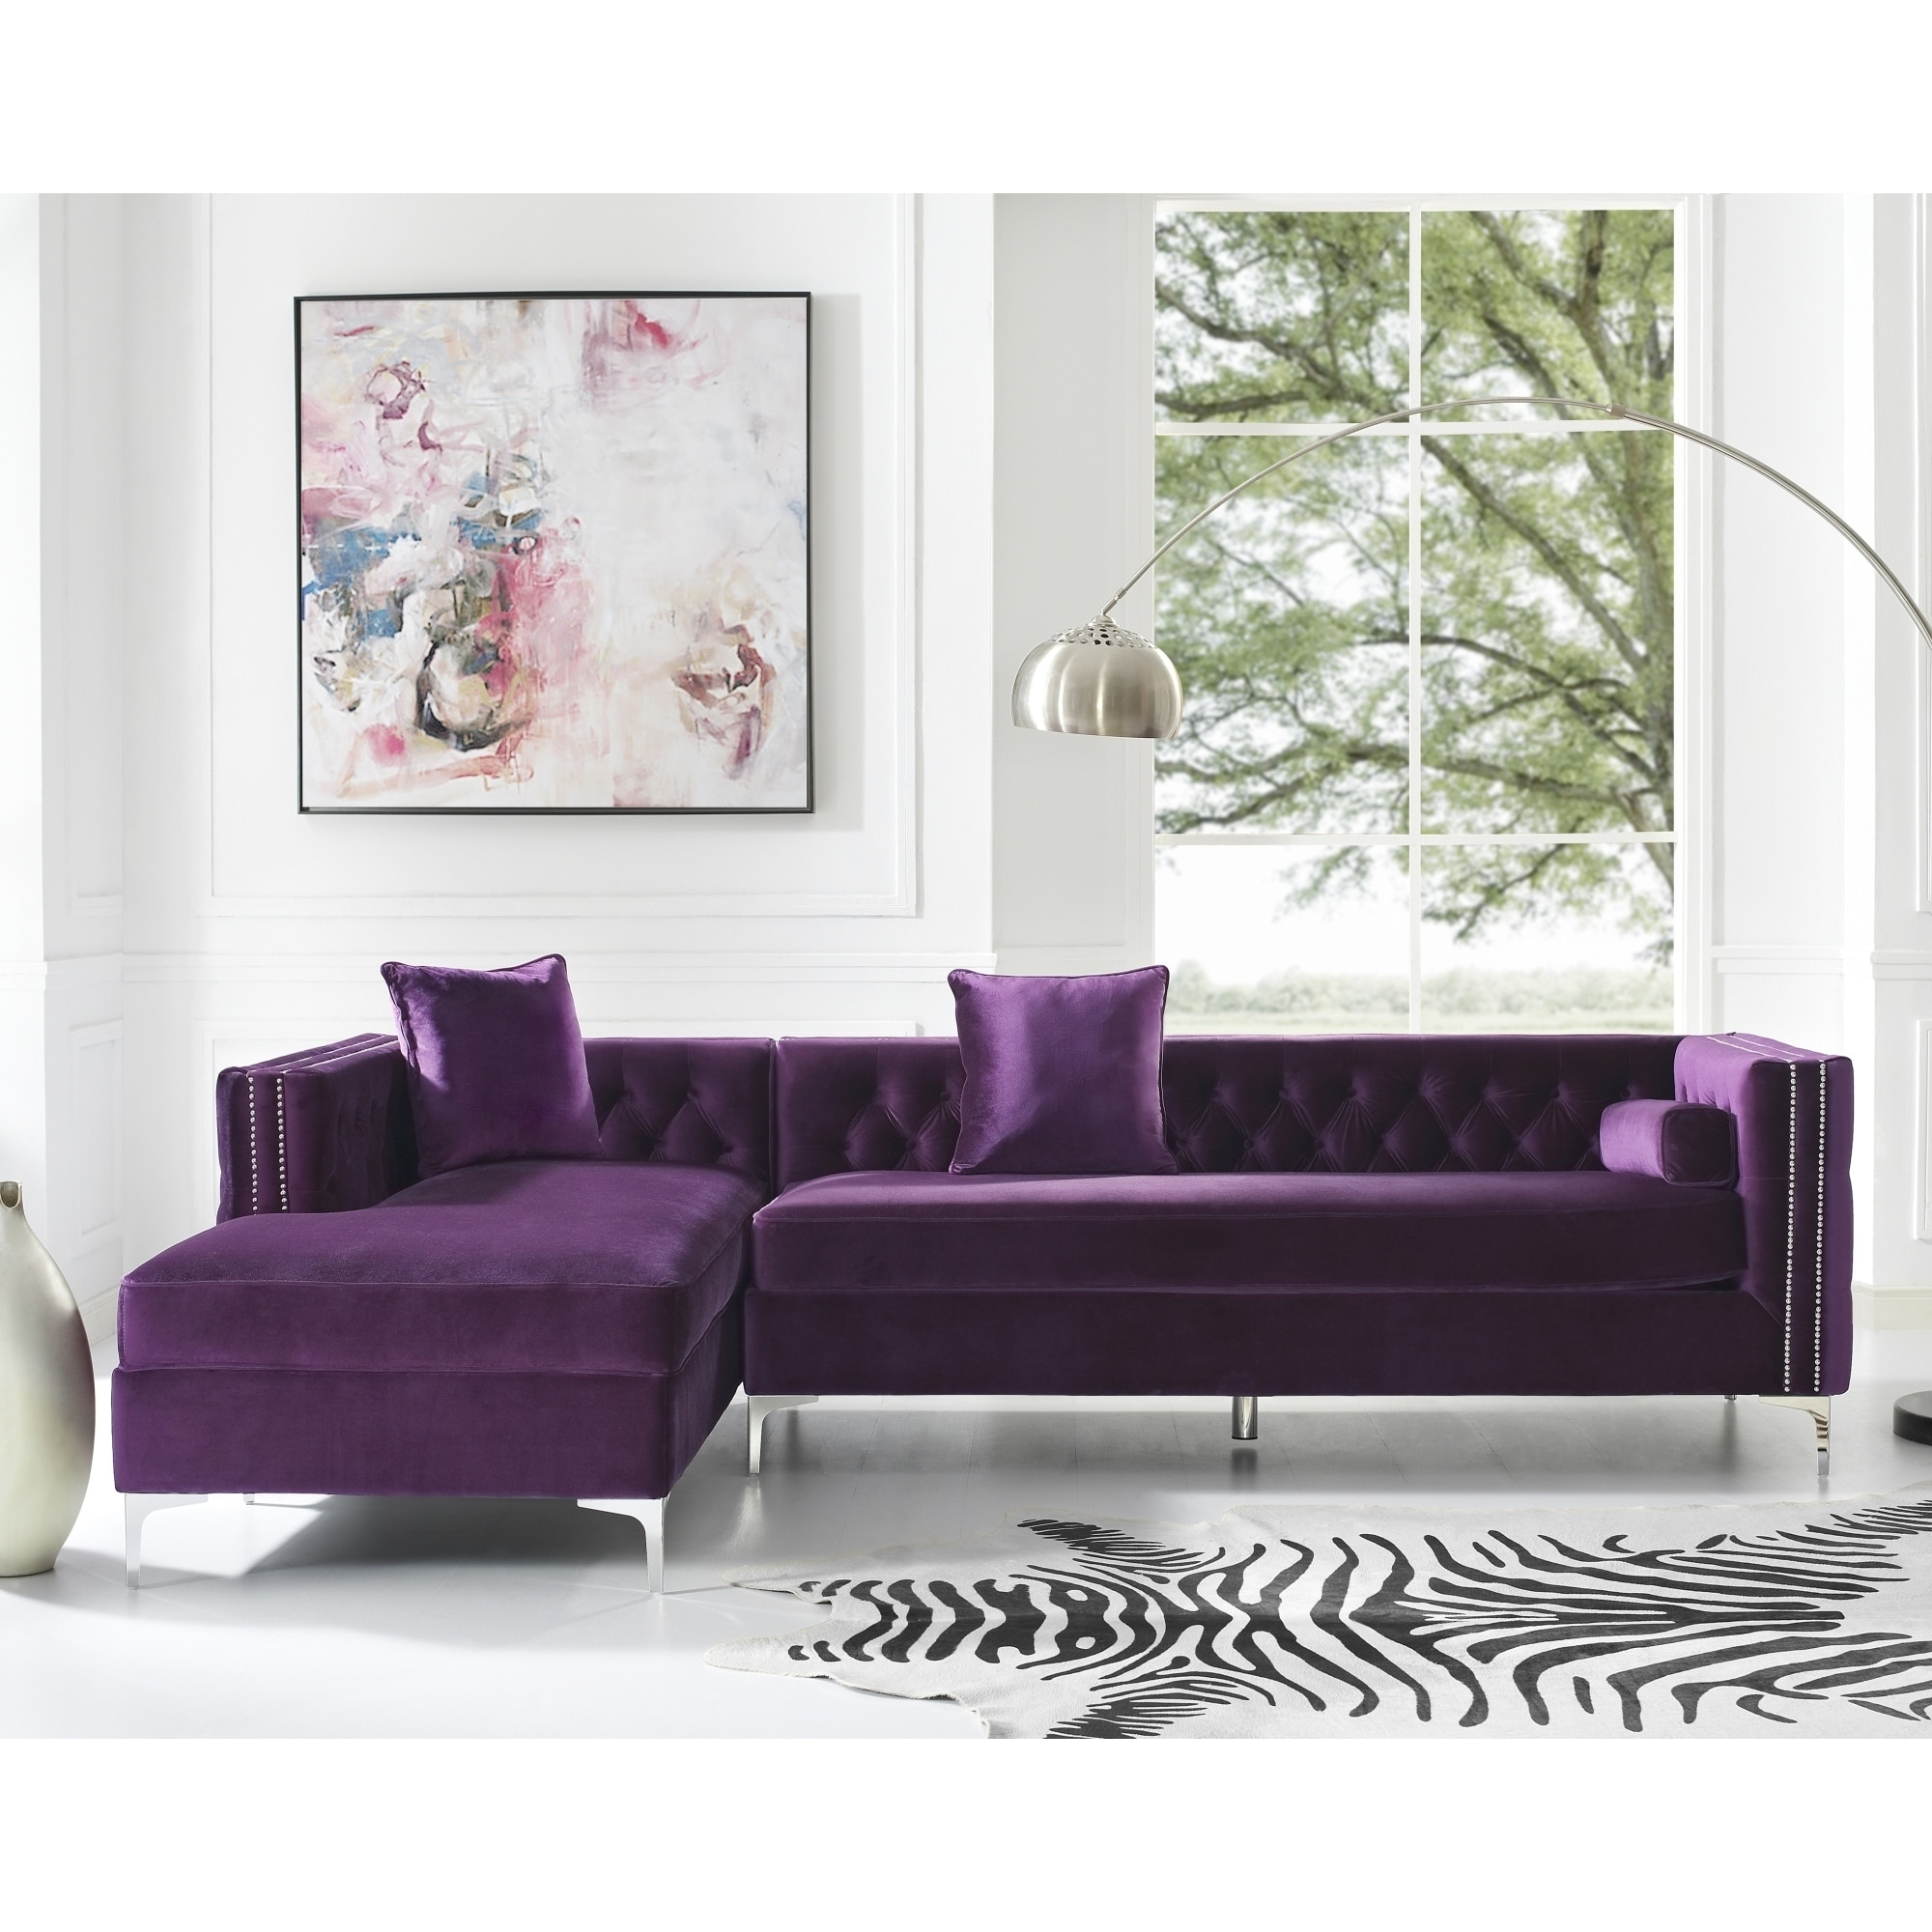 pattern of room for cheap area sofadesign navy sofas using furniture backtobosnia skin inspirations staggering red sectional full sleeper size cushion decorate picture in combined sofa with having rug living velvet blue and left lounge chaise grayet austin zebra tx